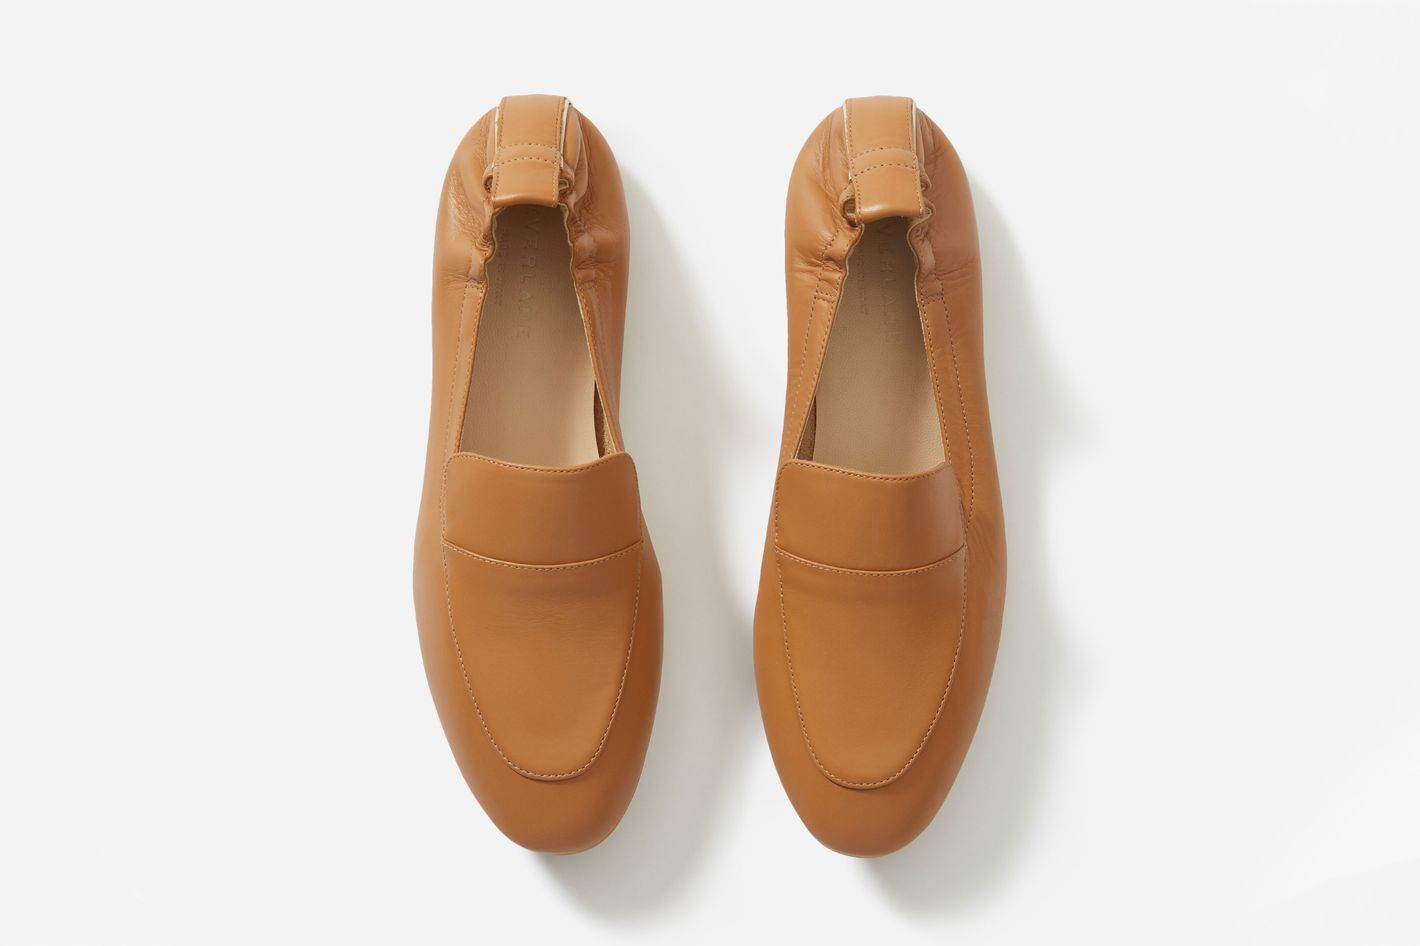 The Day Loafer in Caramel